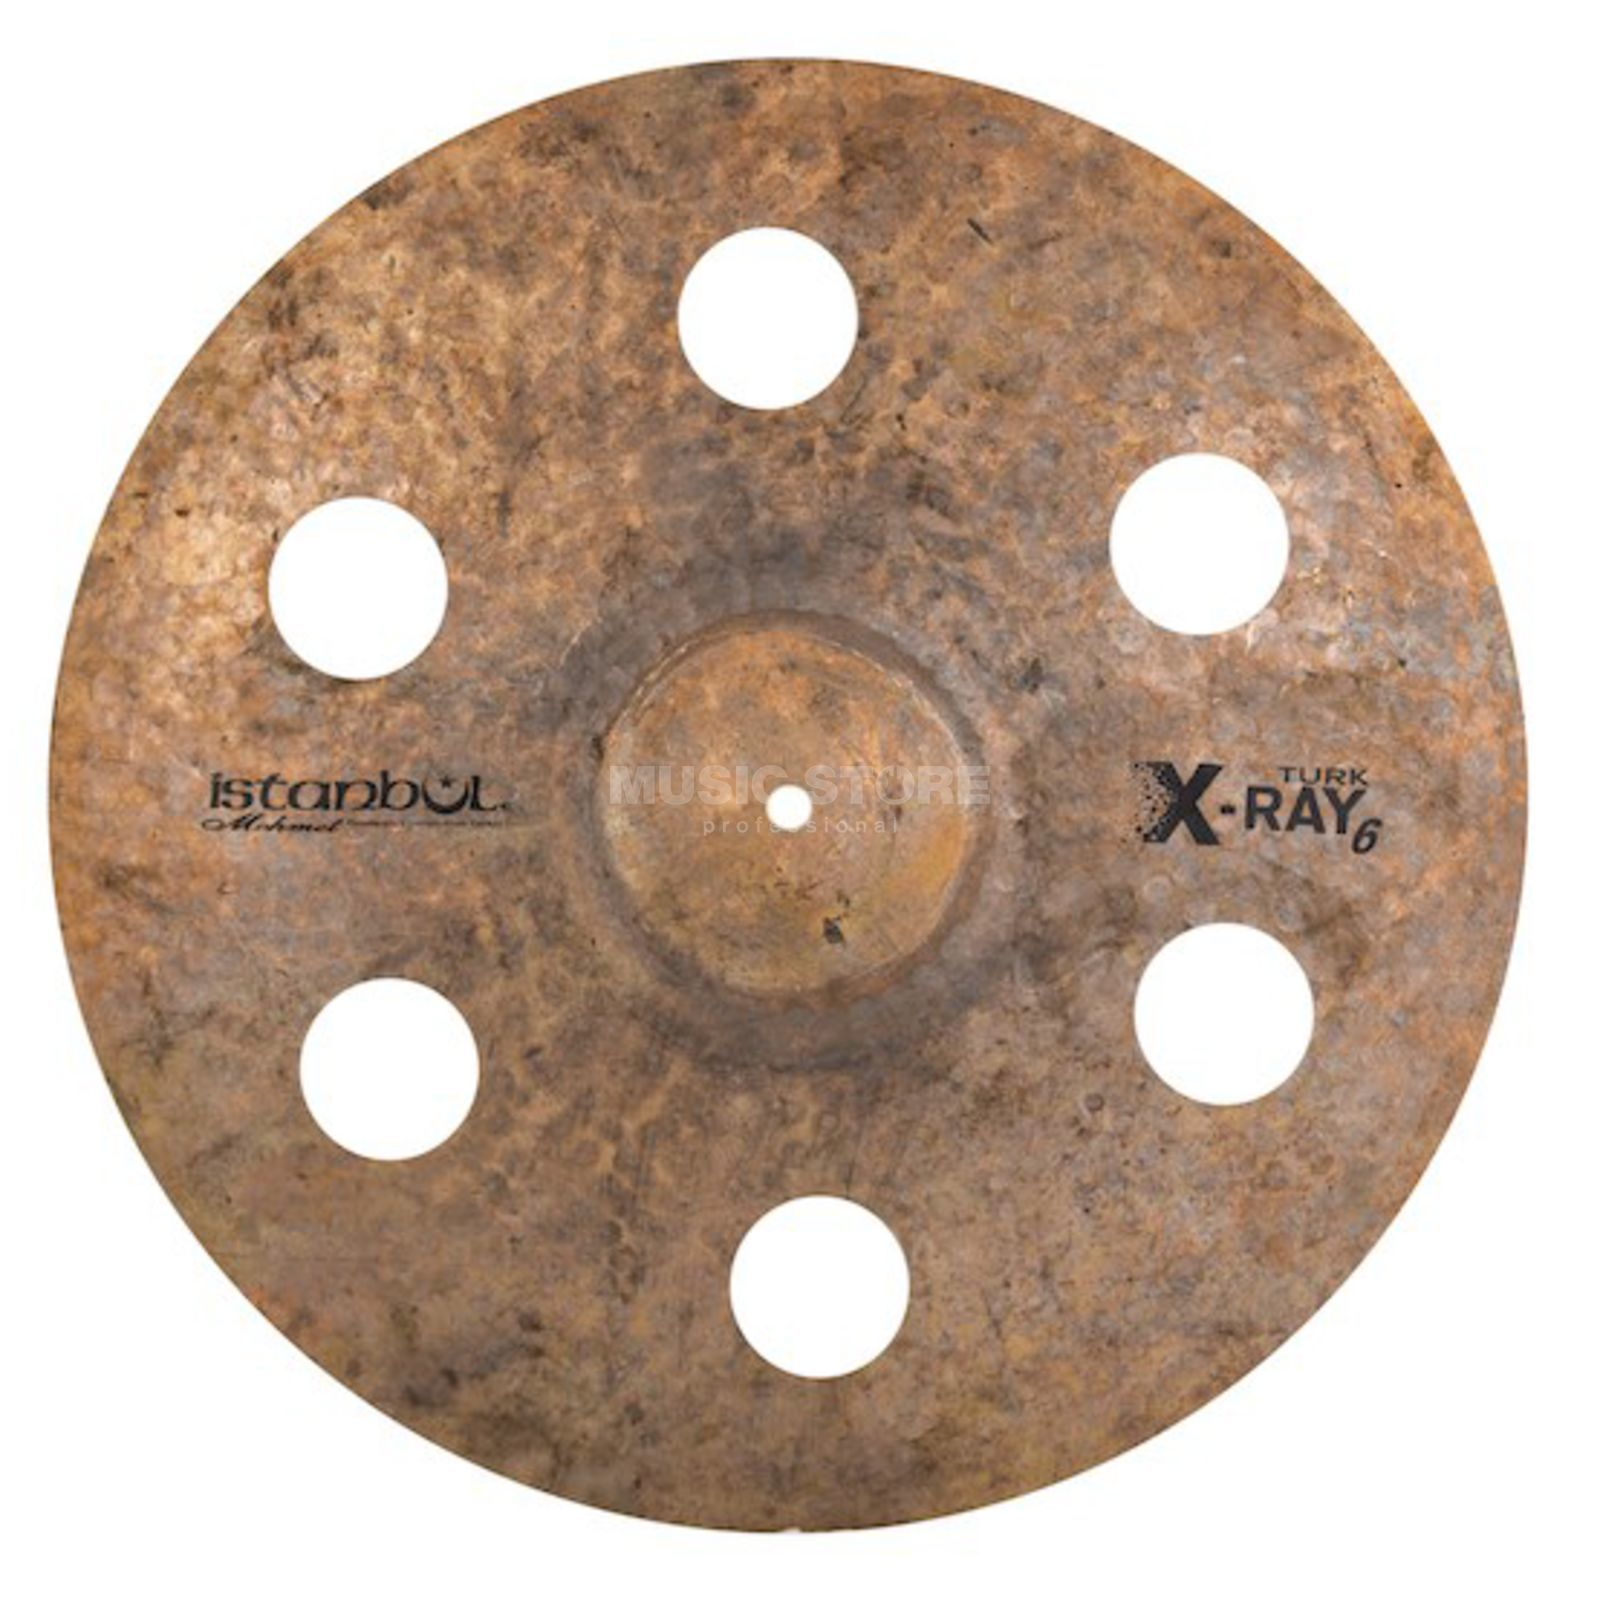 "Istanbul X-Ray 6 Turk Crash 16"" Natural Finish Изображение товара"